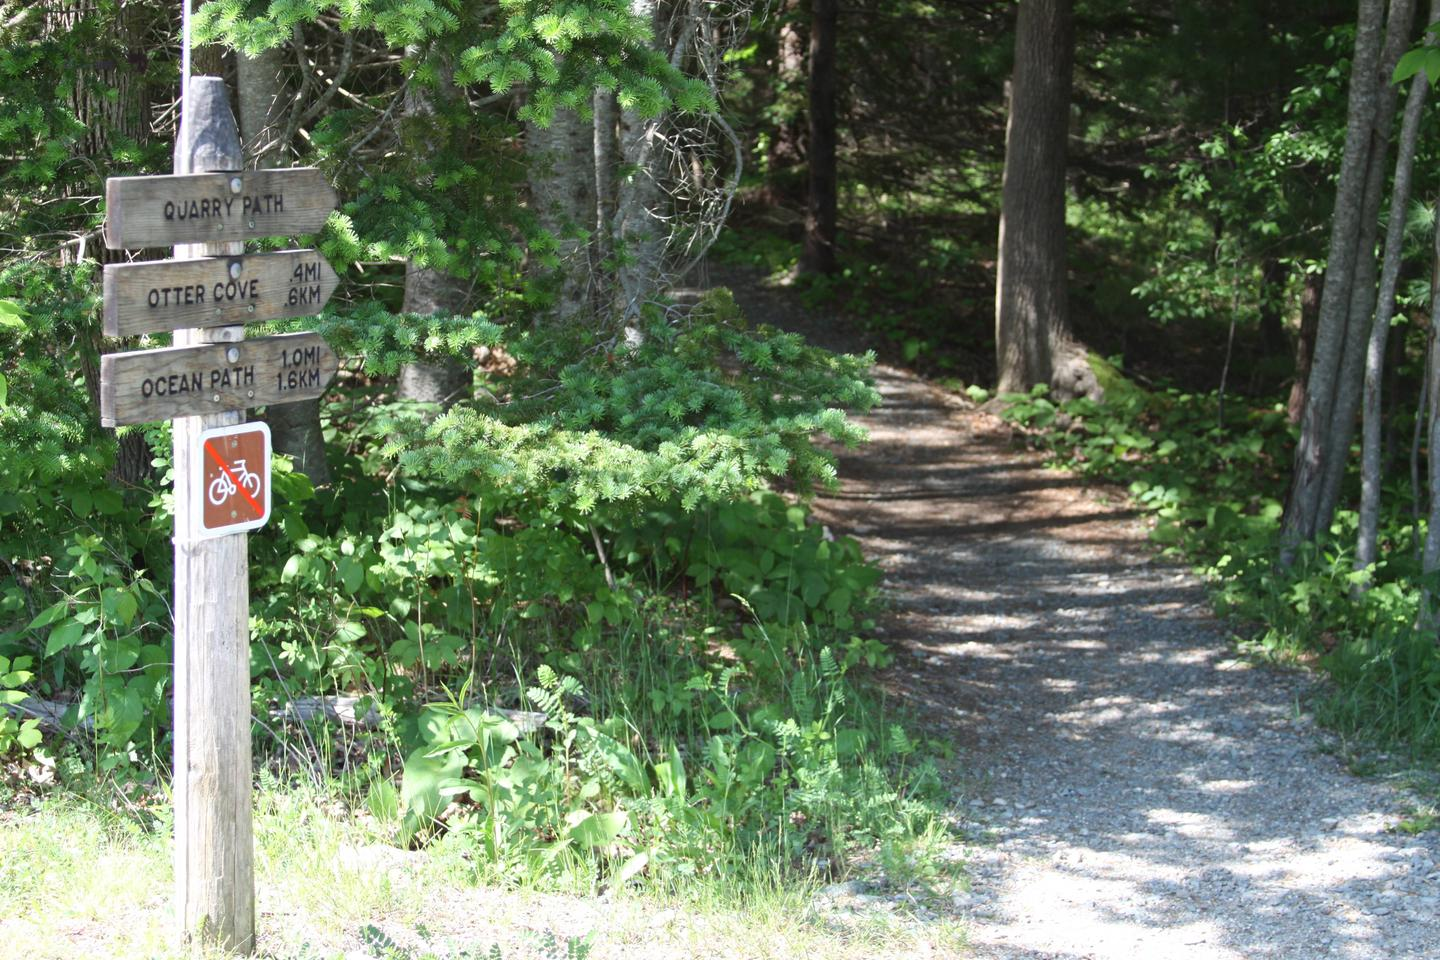 Quarry Path Trailhead near Ranger Station